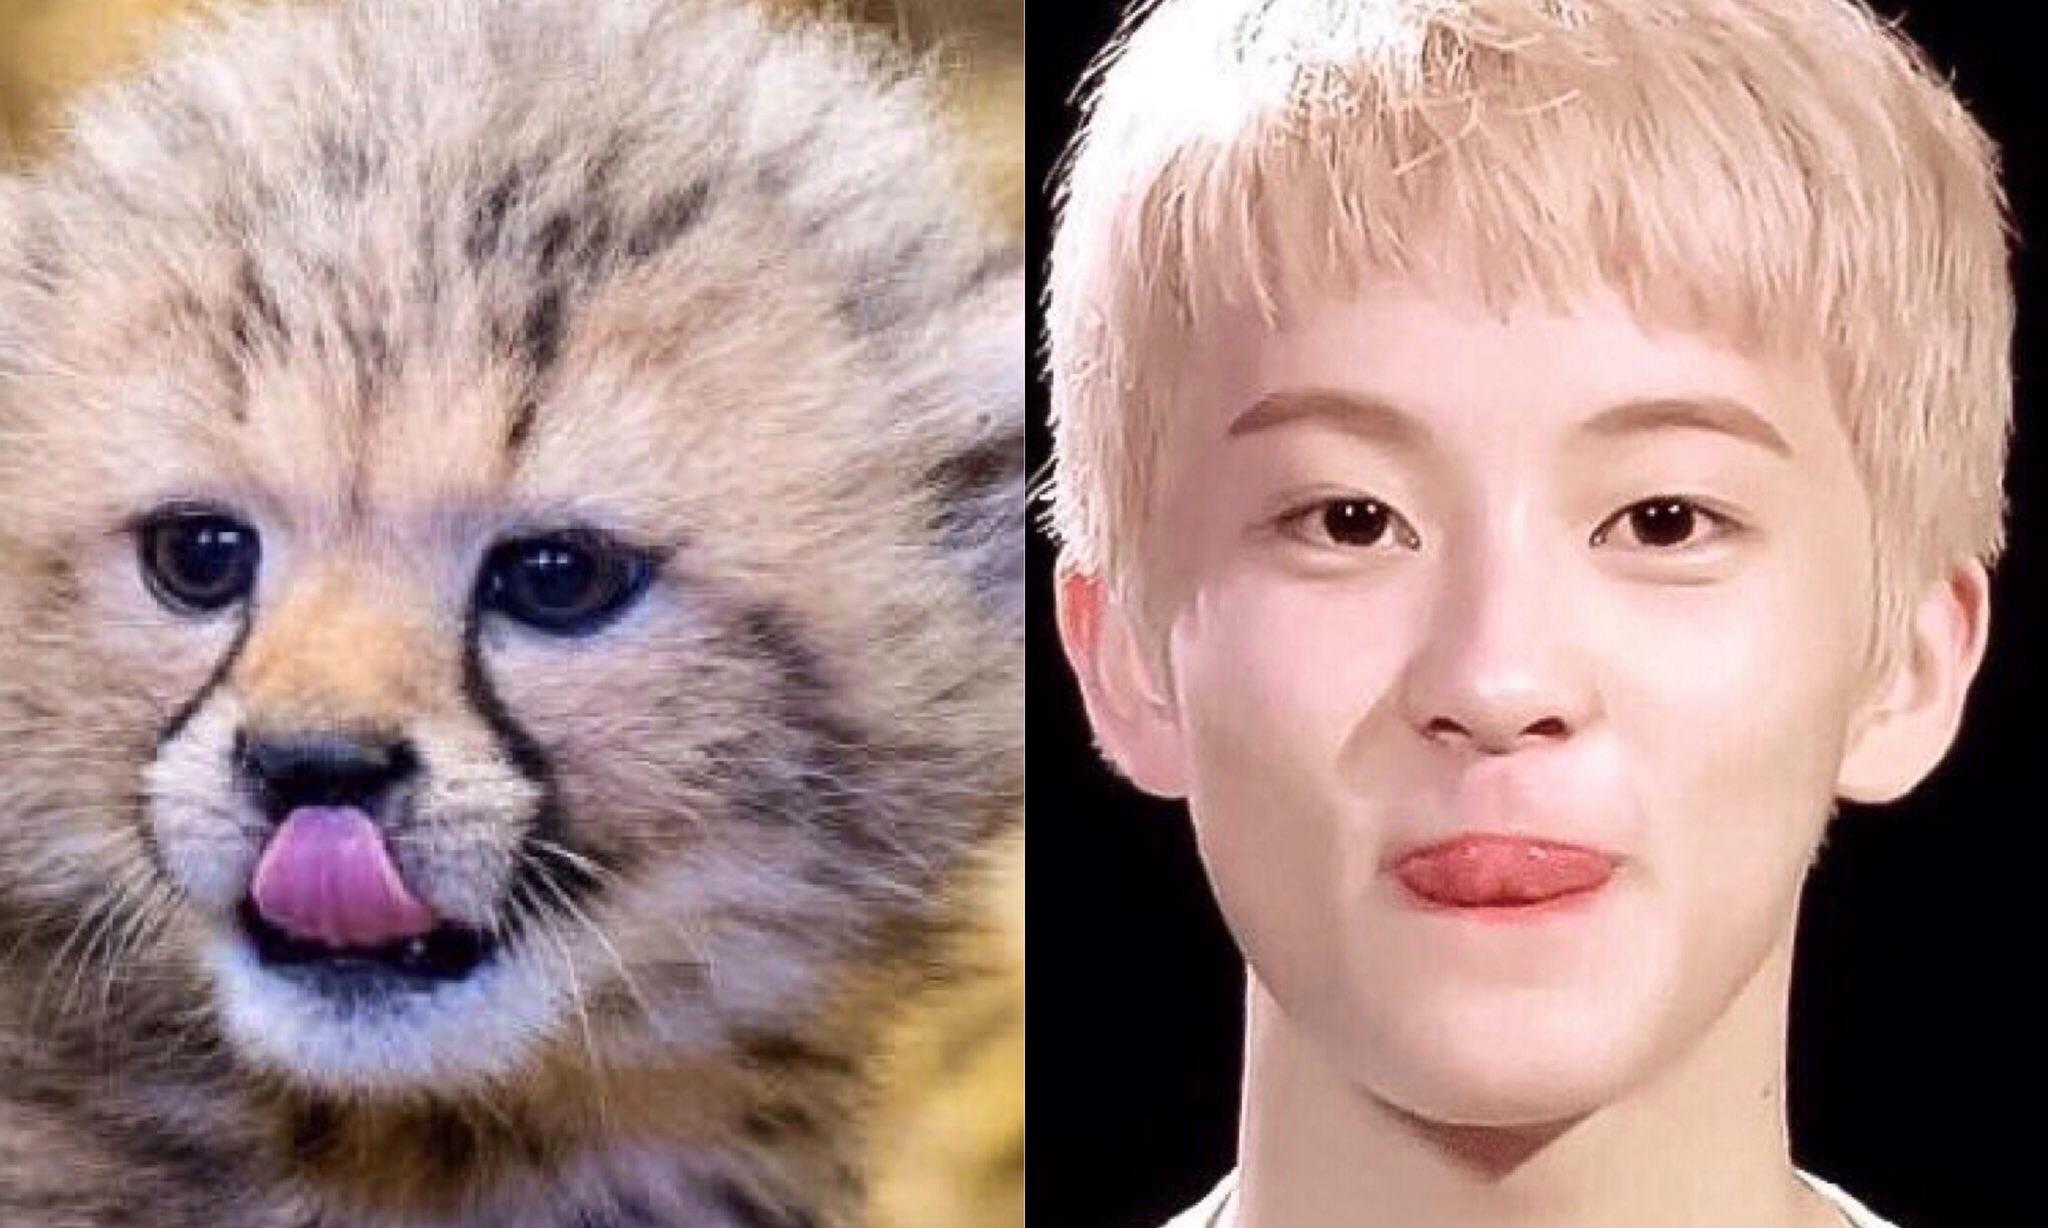 Baby Leopard Plushie That Reminds NCTzens Of NCT's Mark Trends Online